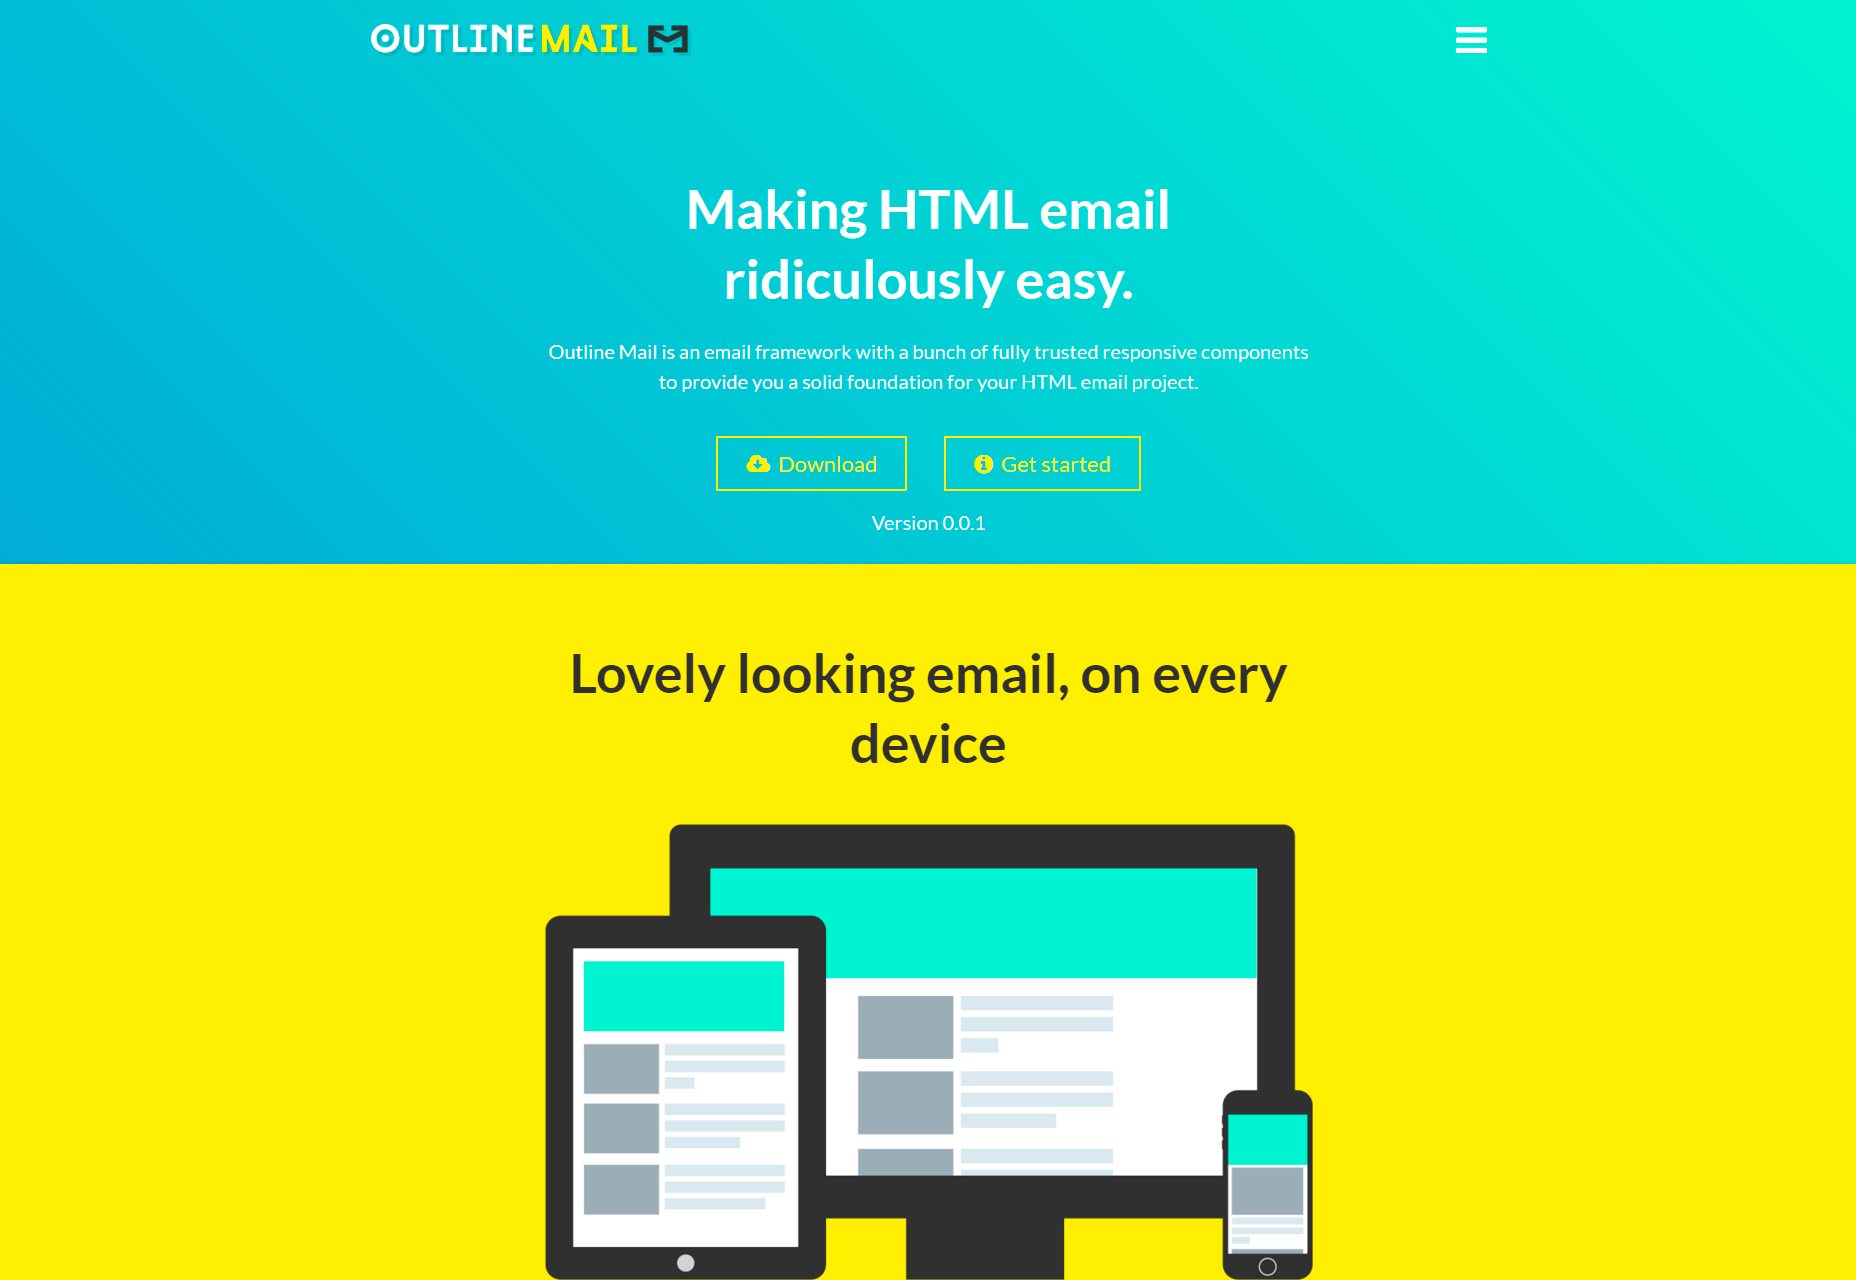 outline-mail-easy-html-email-templates